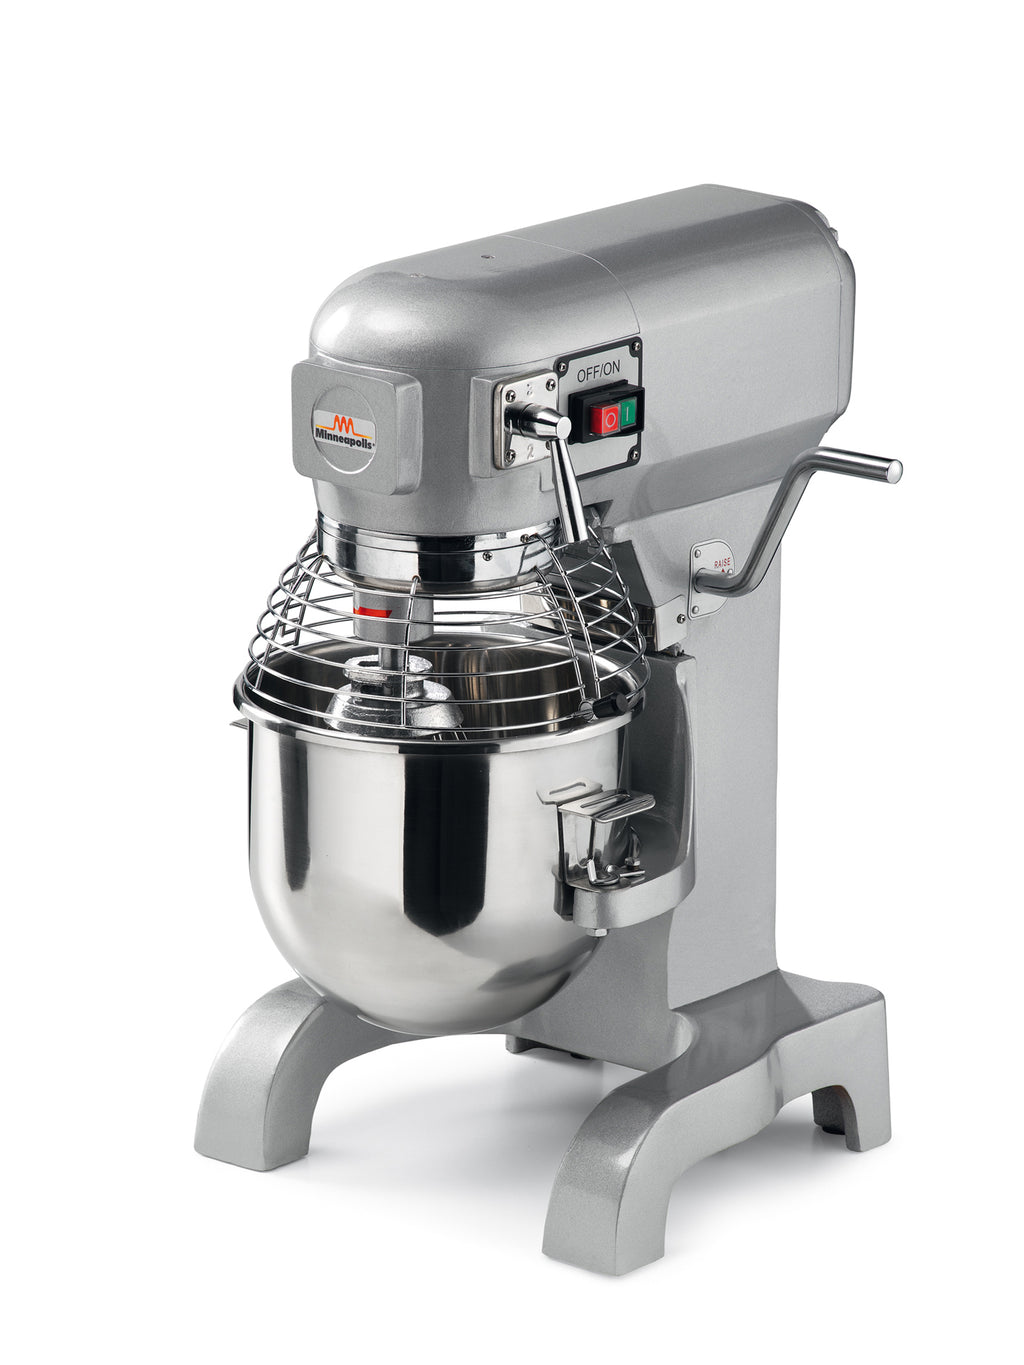 Sirman Medium Duty Planetary Mixer - 10 Litre,Planetary Mixer,Sirman